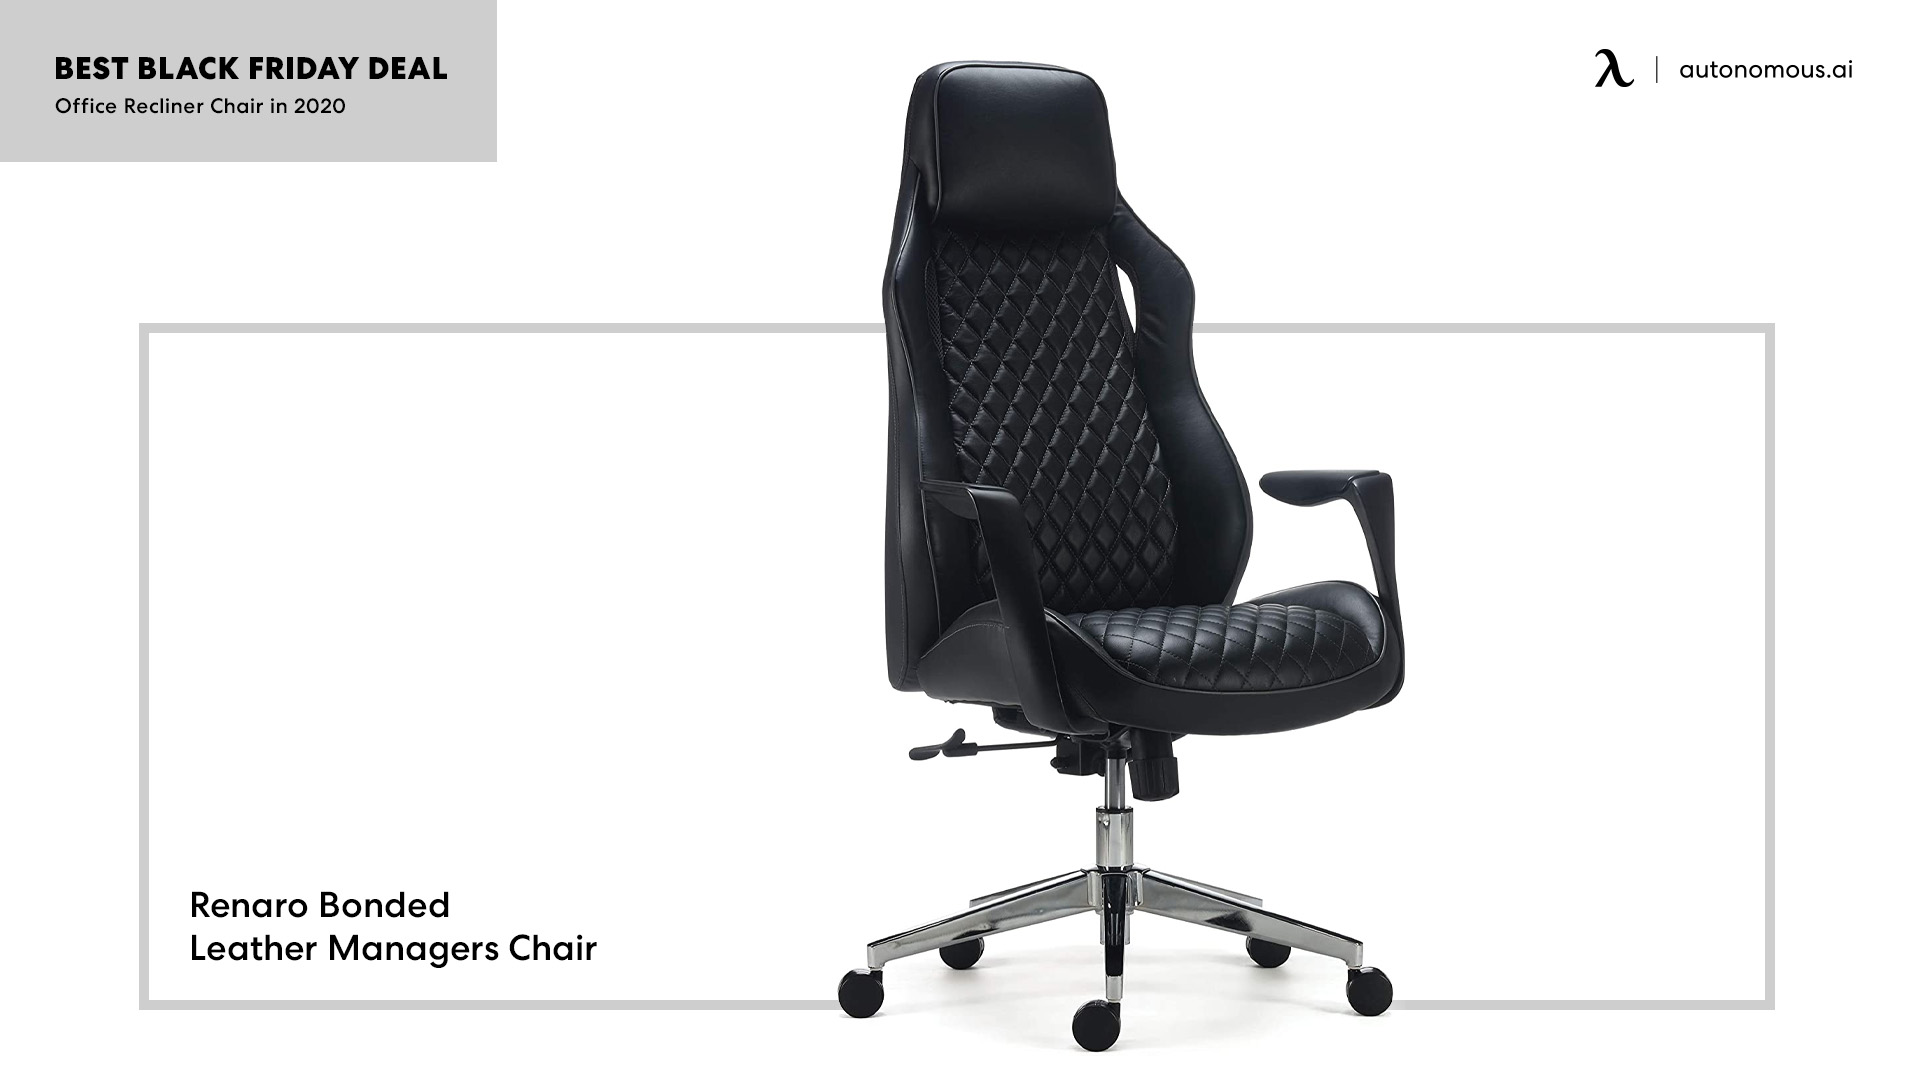 Renaro Bonded Leather Managers Chair